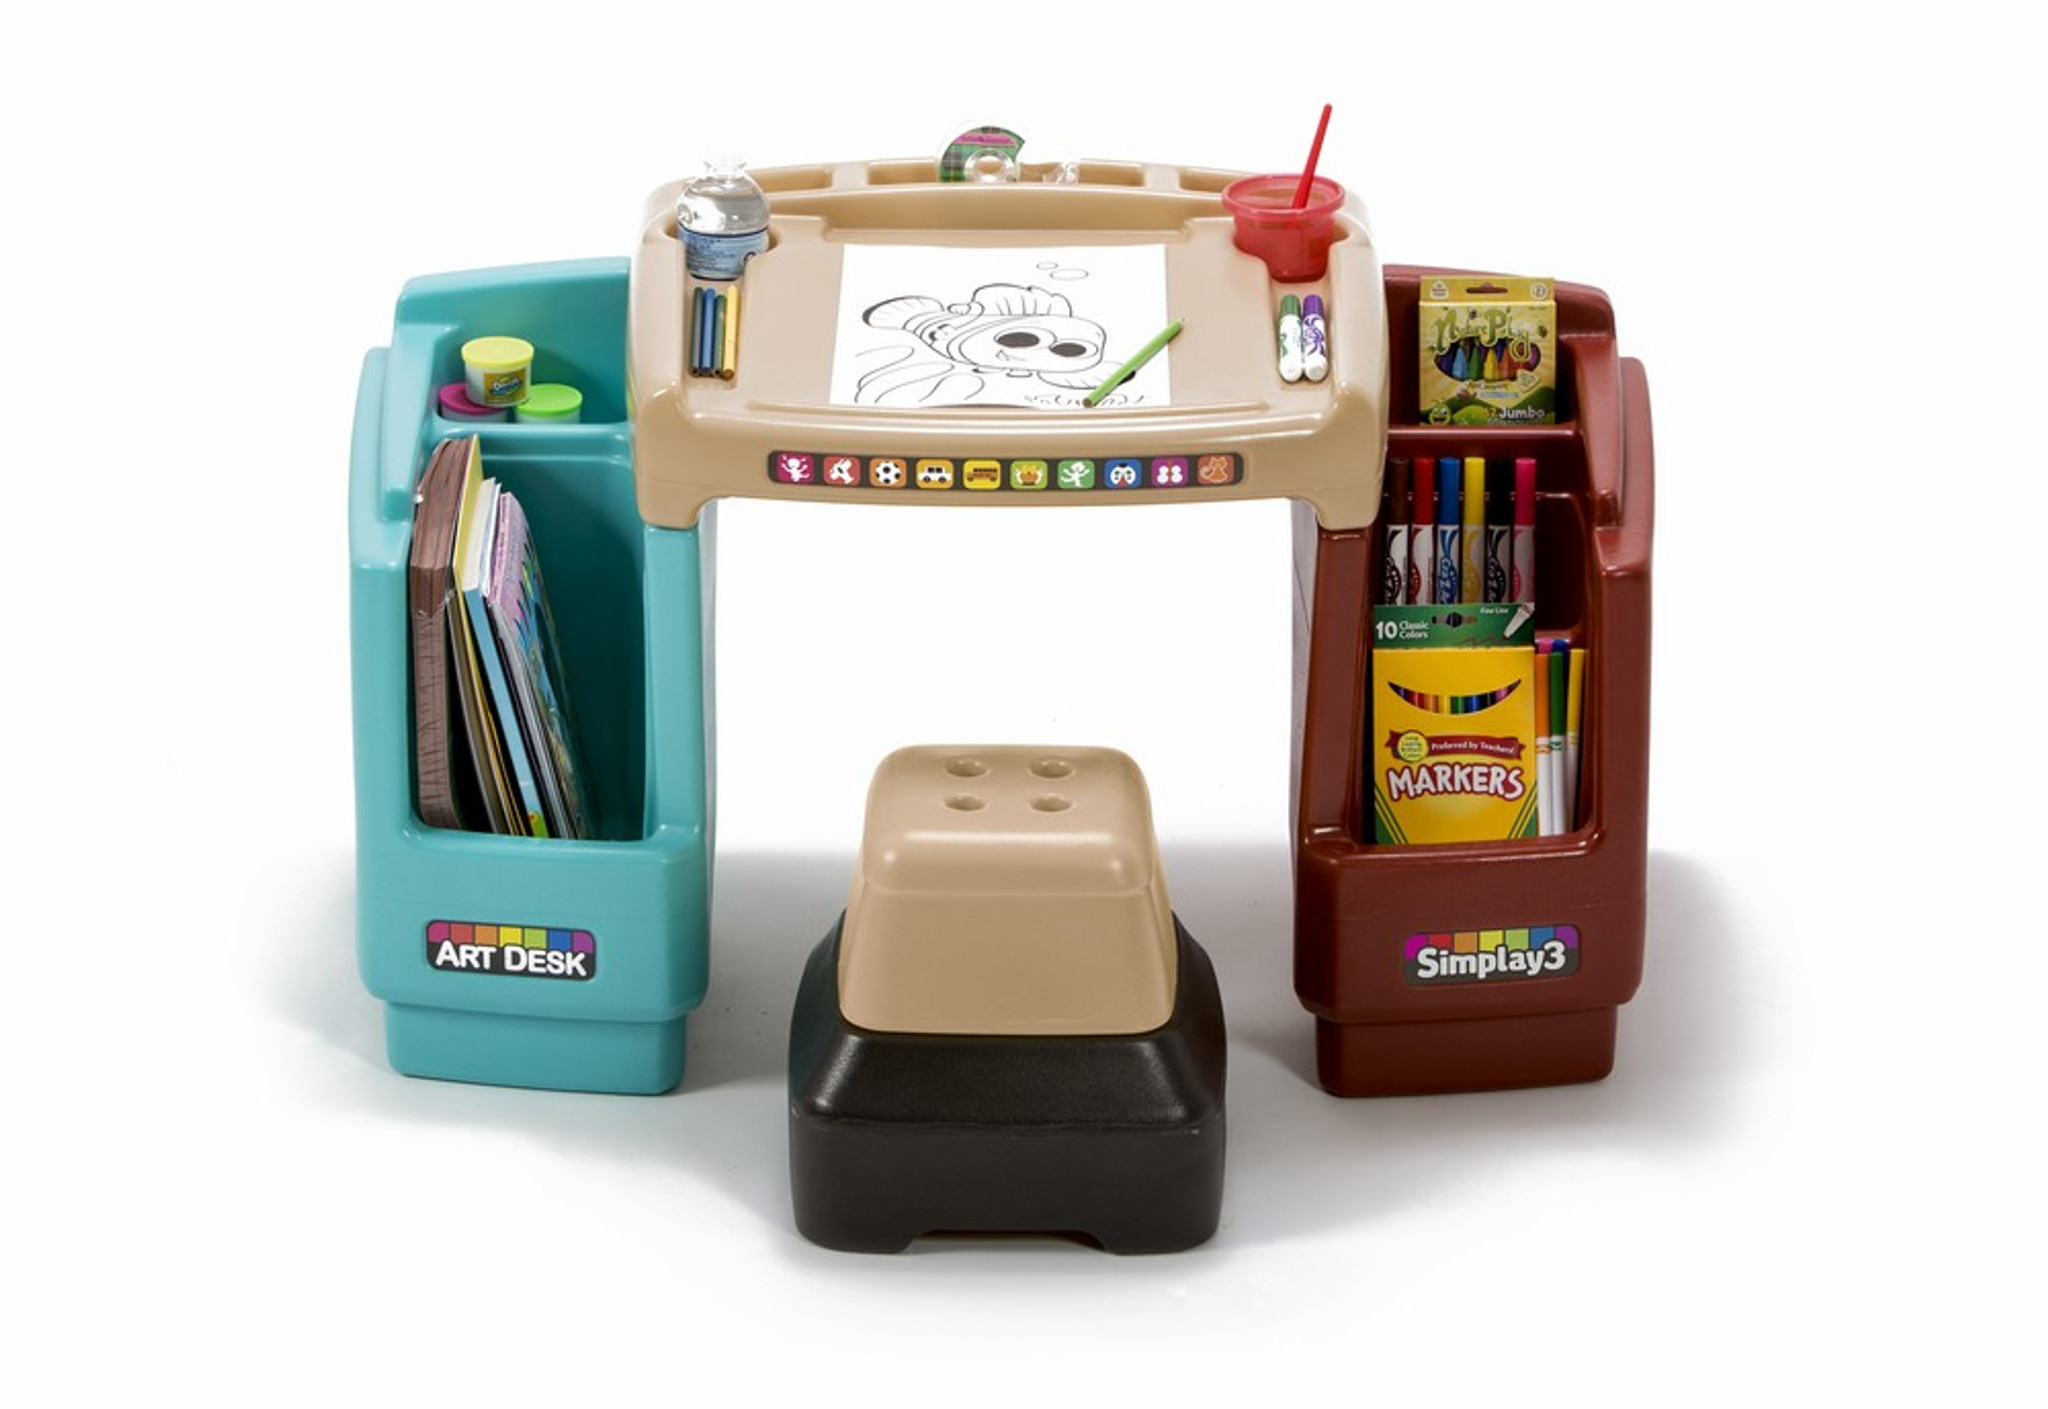 pin desks desk pinterest spaces tumblr image for photo art result soot and